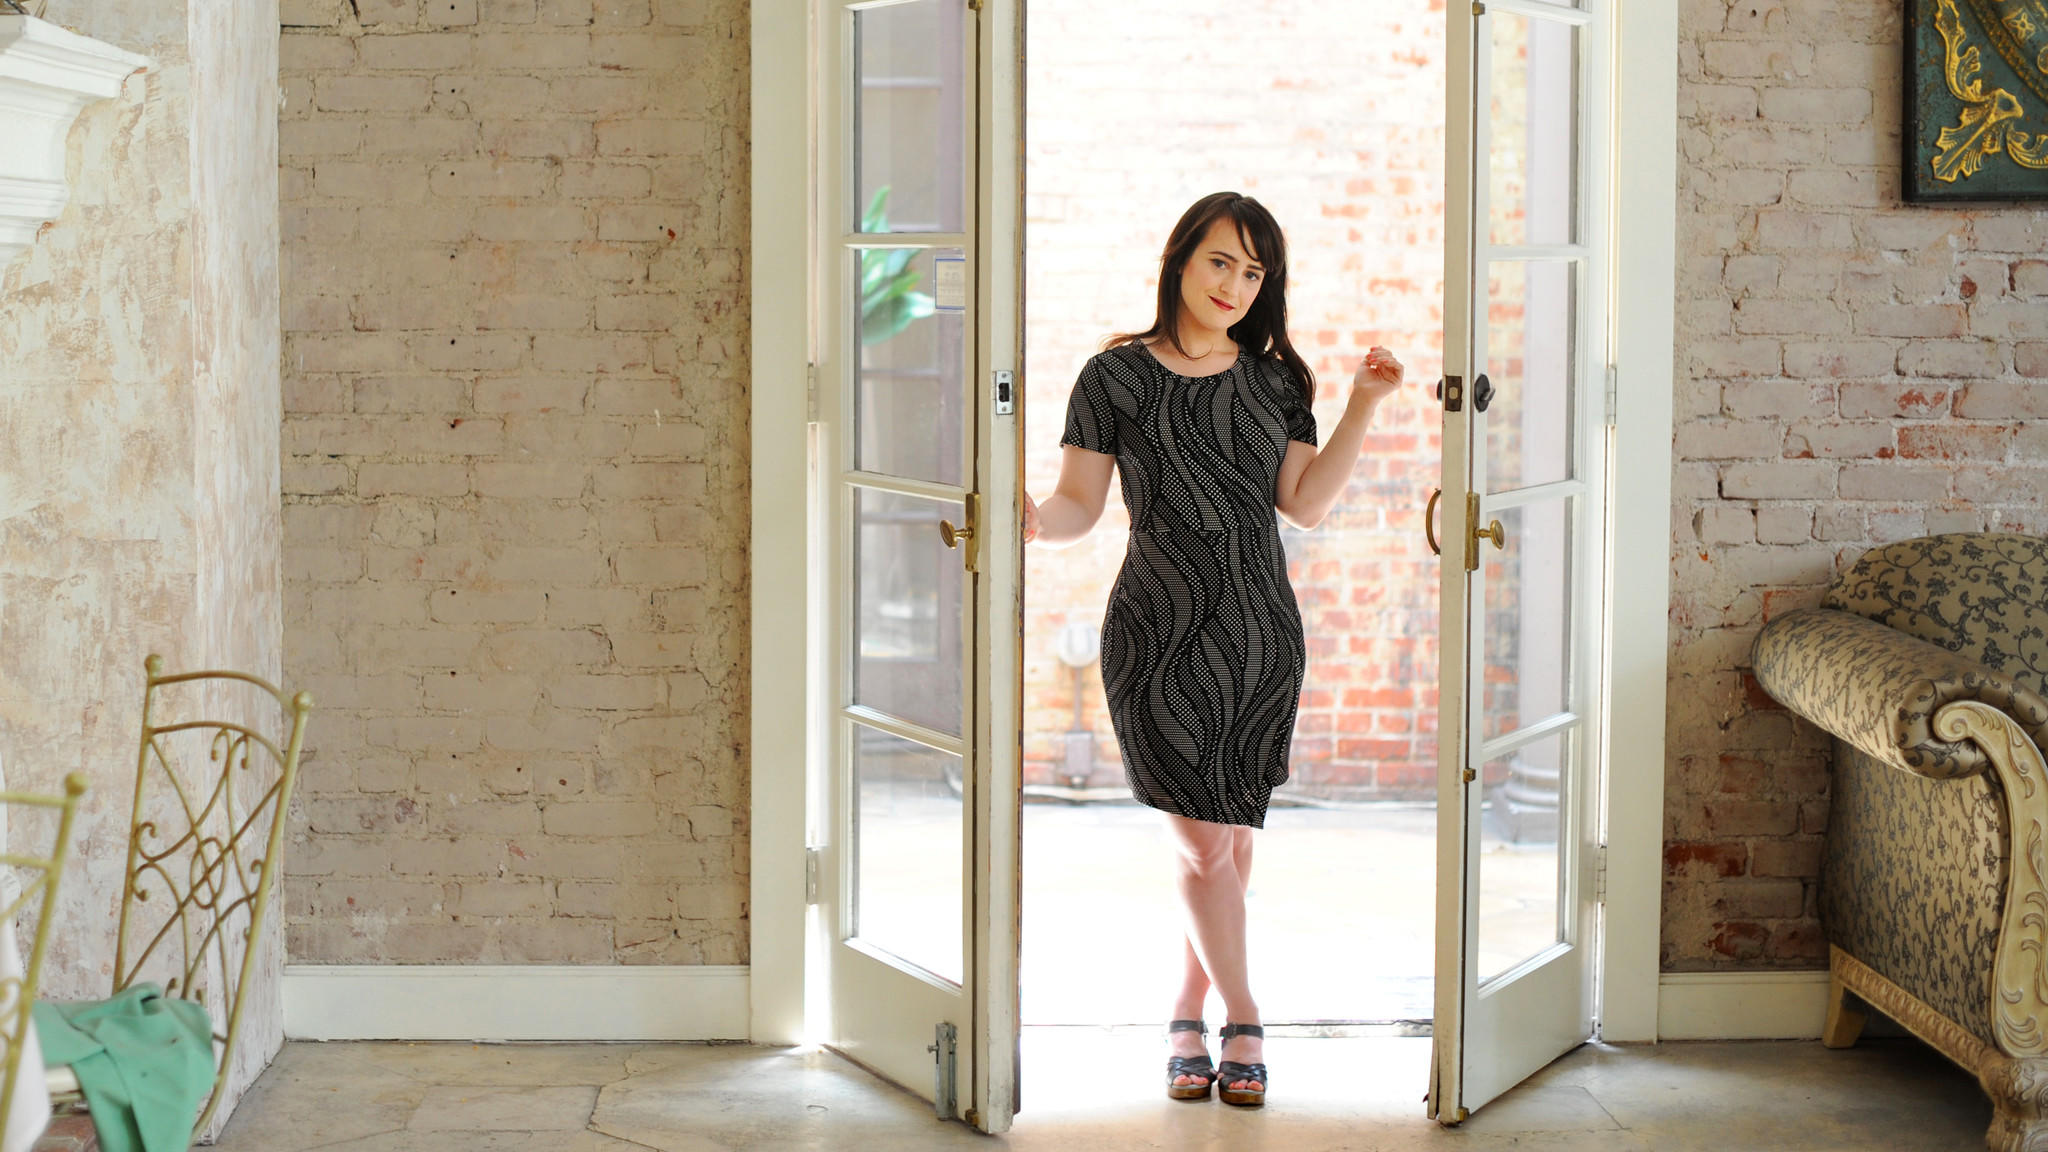 Mara Wilson. (Christina House / For The Times)